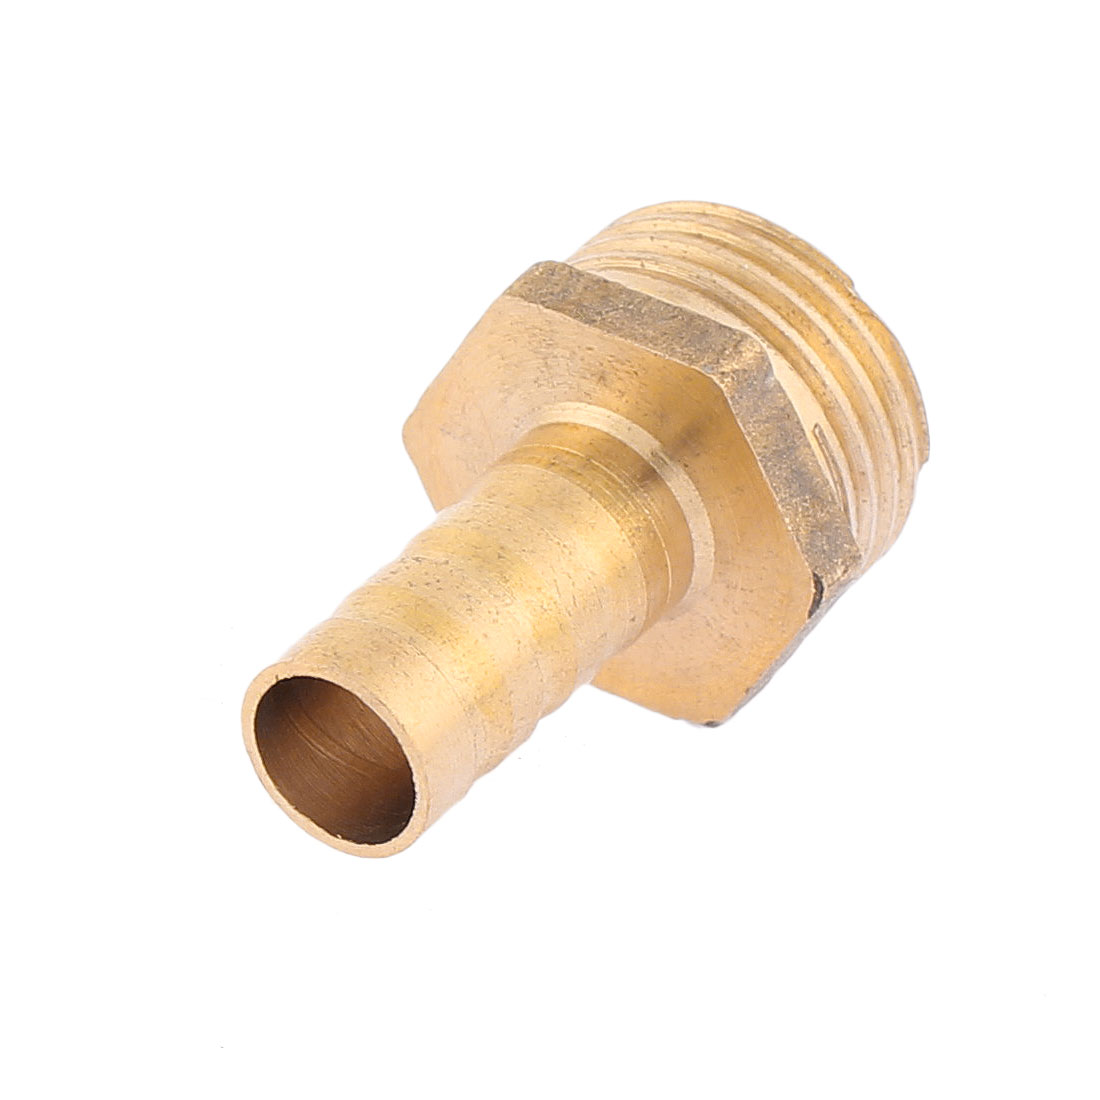 34mm Total Length 10mm Fuel Gas Hose Barb to 20mm Male Thread Straight Coupling Fitting Gold Tone